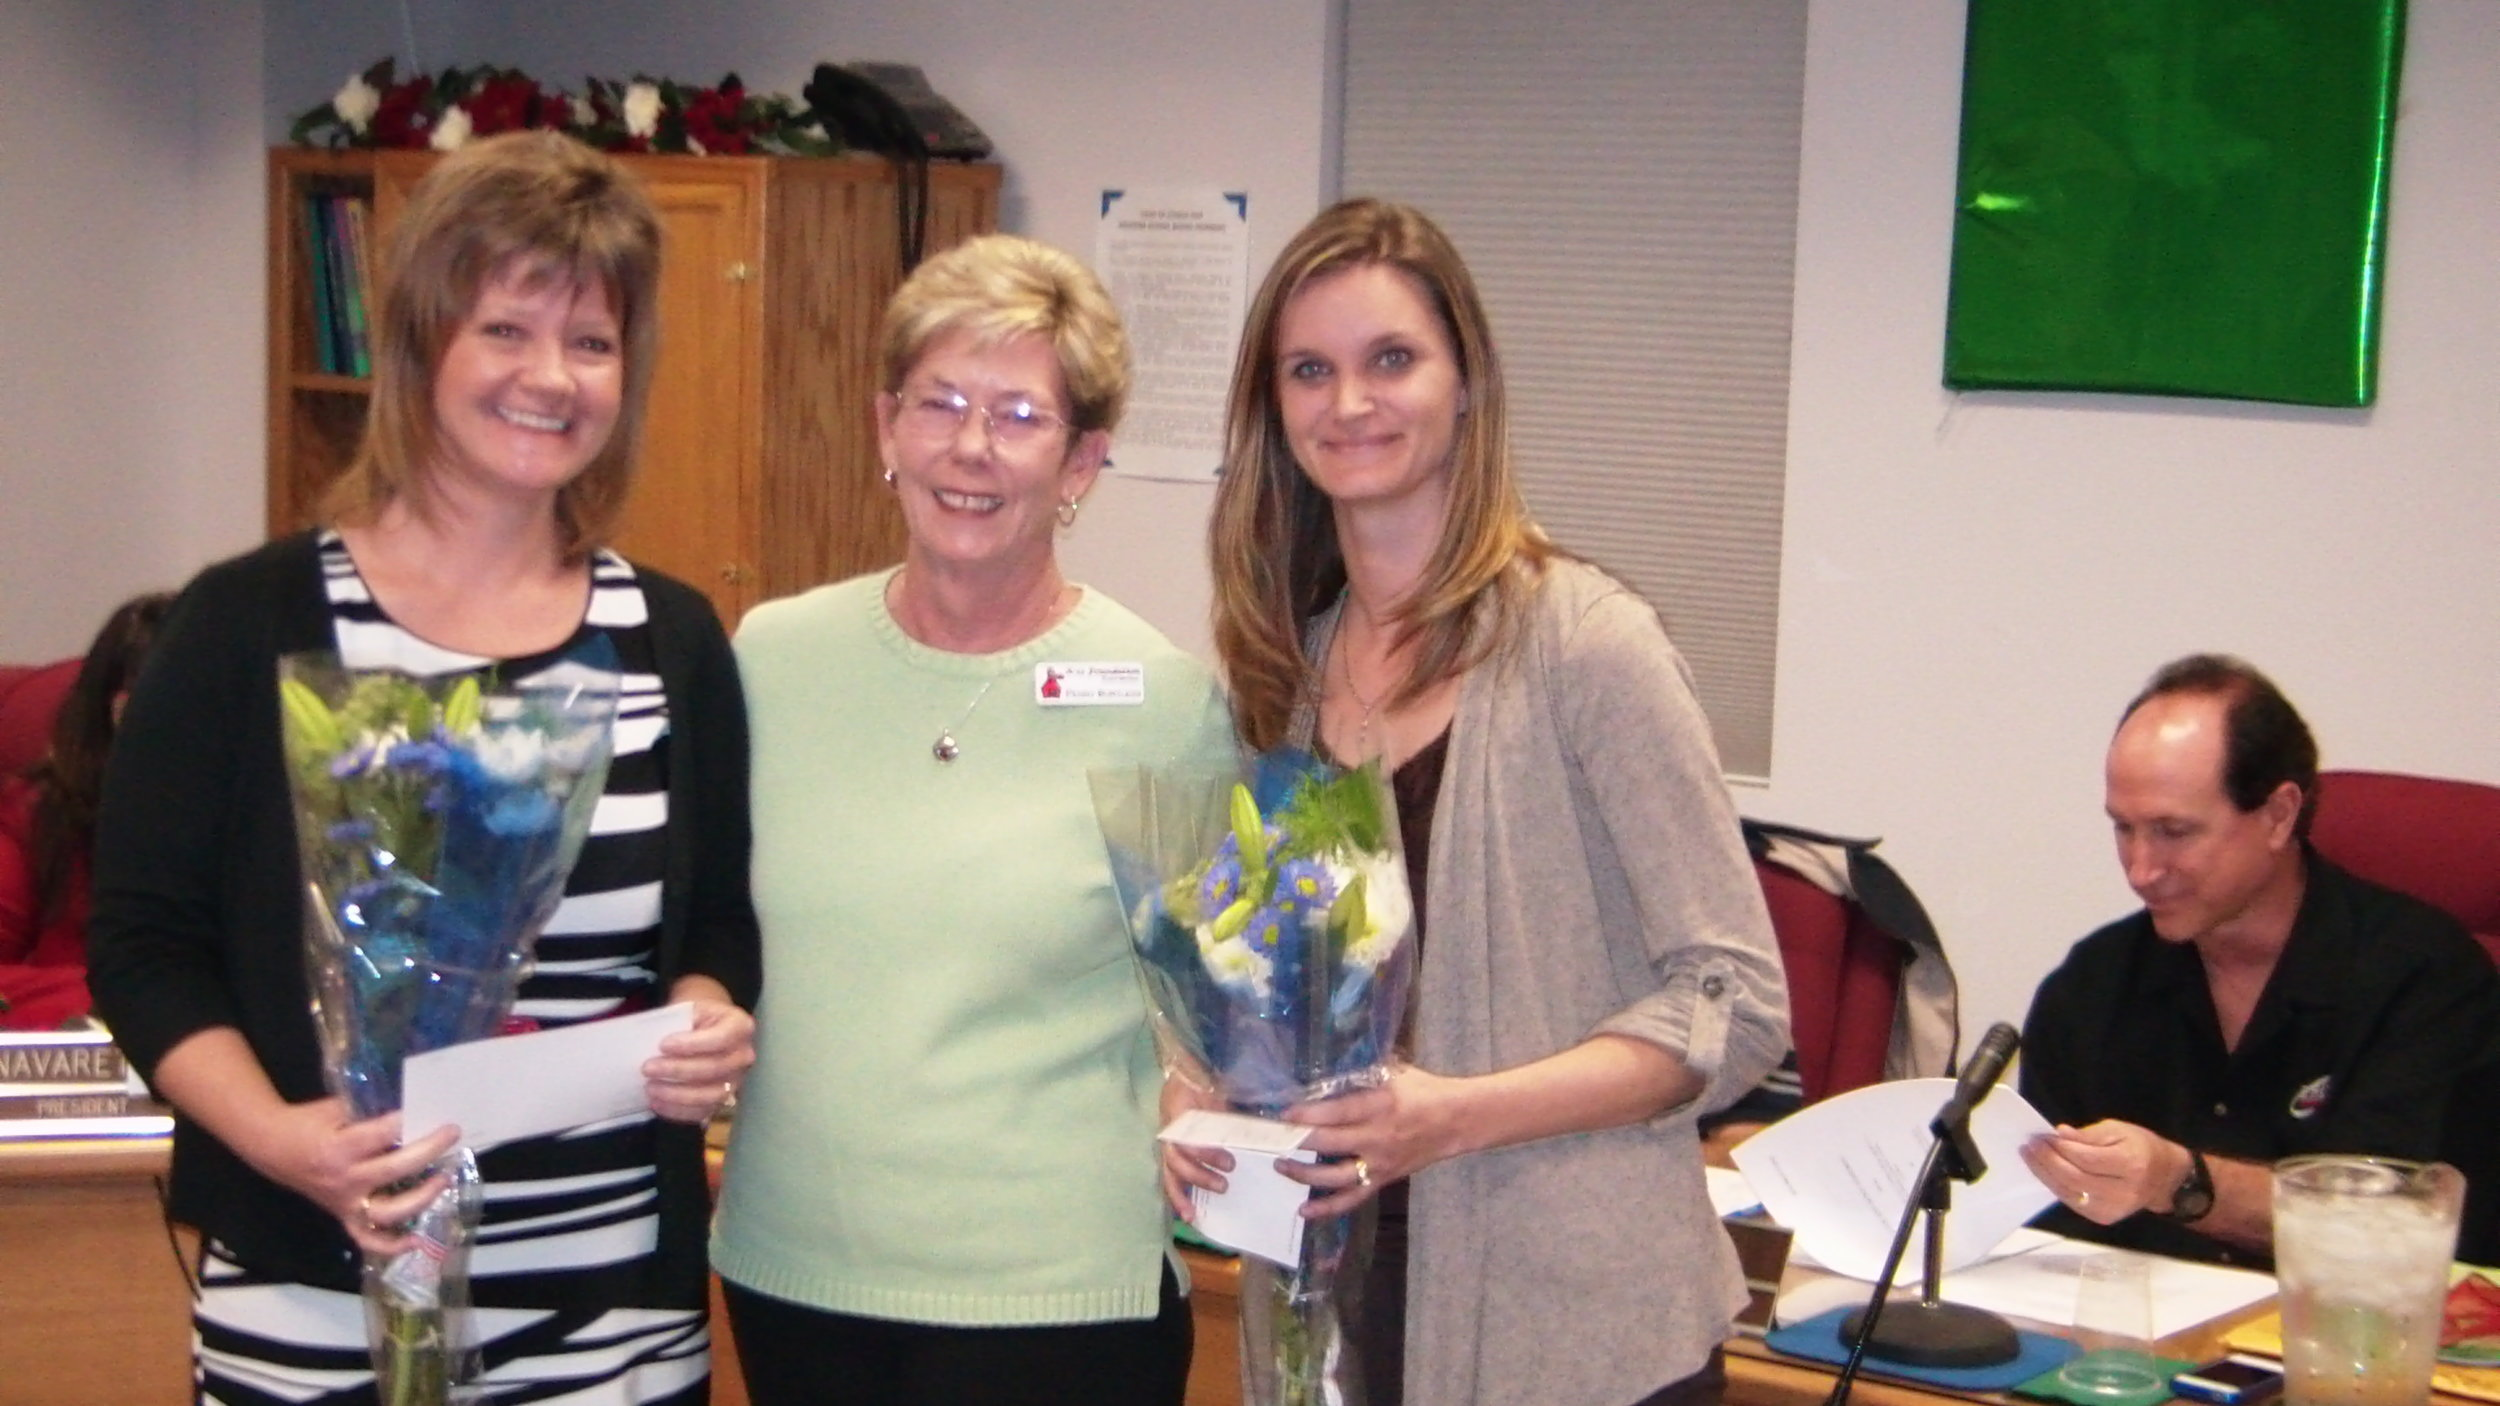 National Board Certification -Christie Olsen, K-12 Board President, Penny and Christina in 2011.